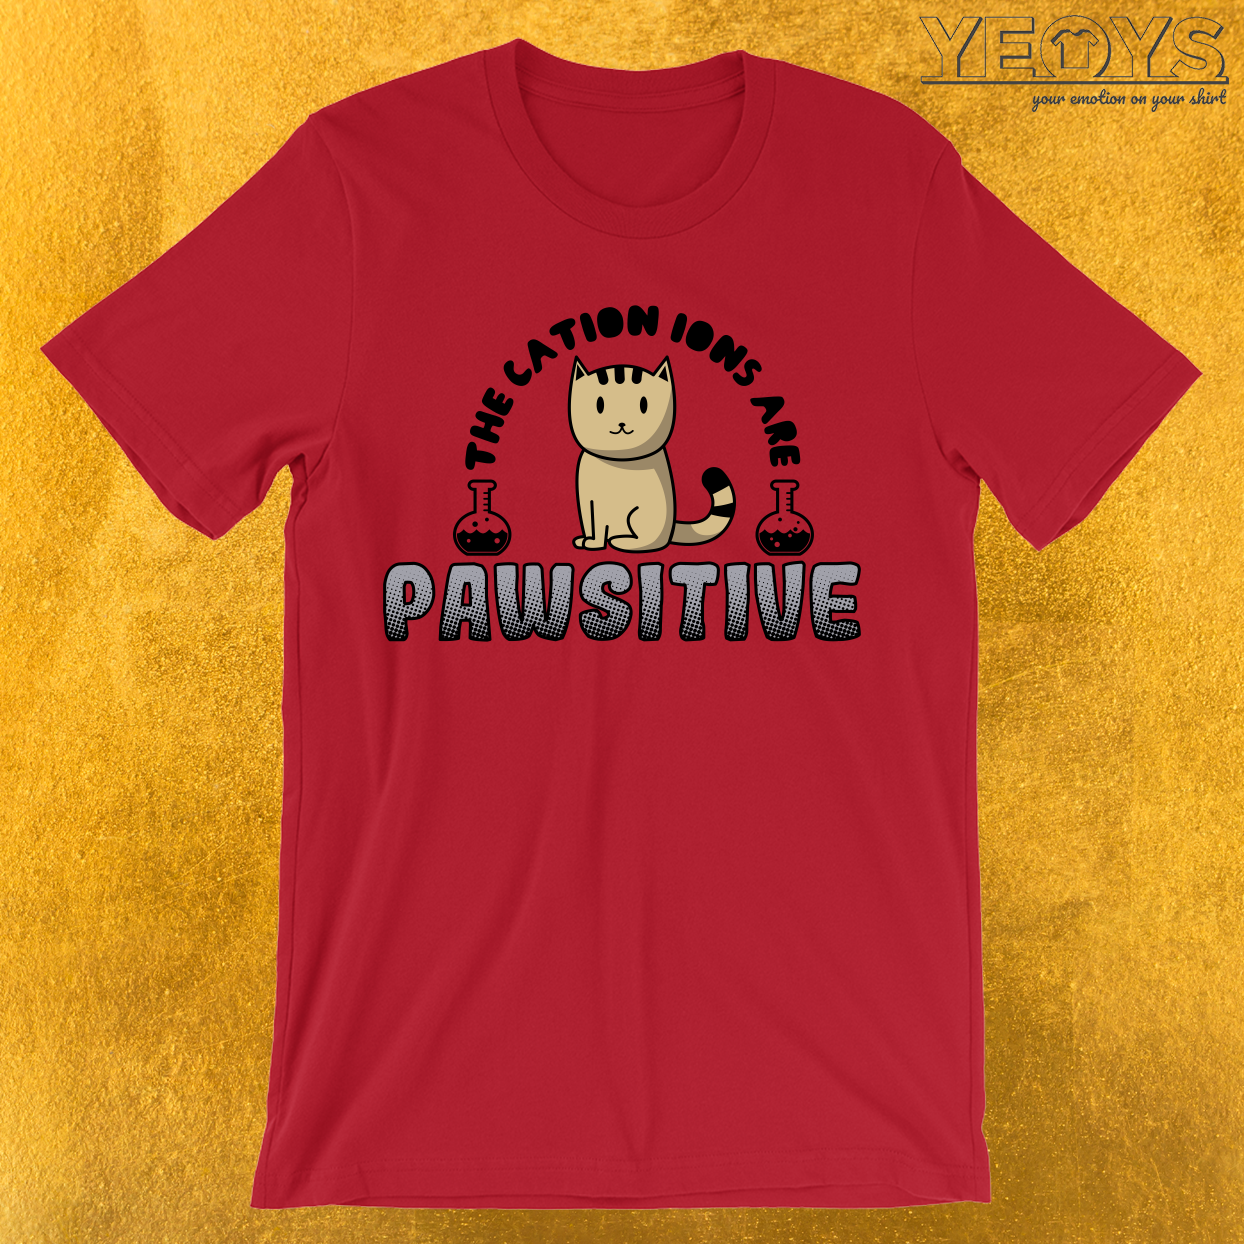 The Cation Ions Are Pawsitive T-Shirt